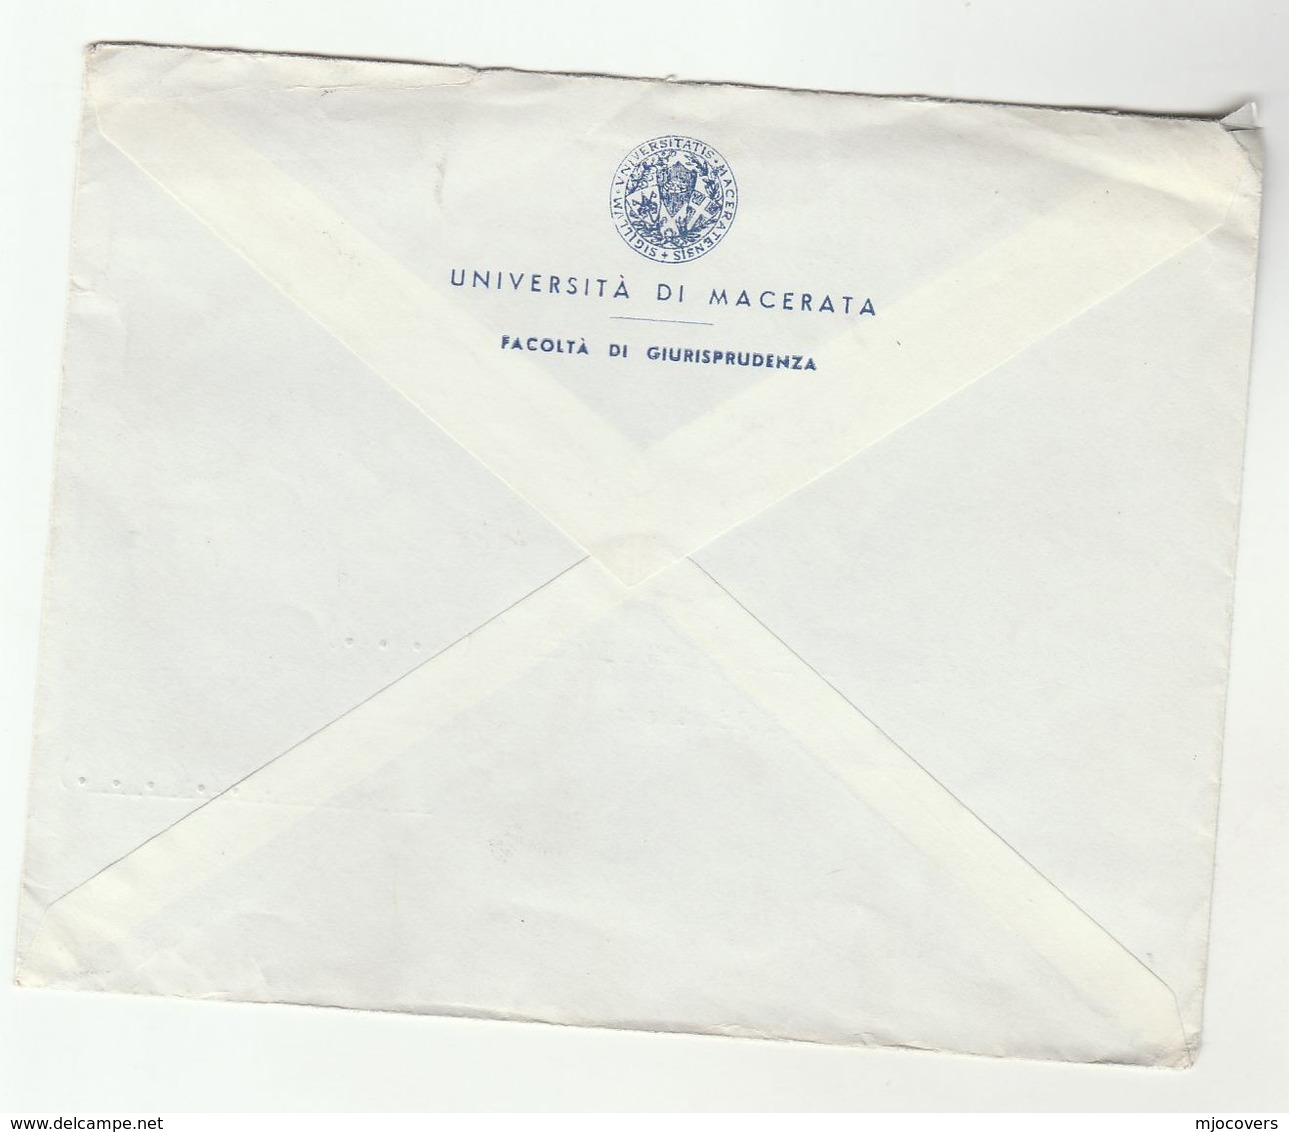 1960s University Macarata ITALY To UNITED NATIONS USA Un Cover Stamps - UNO